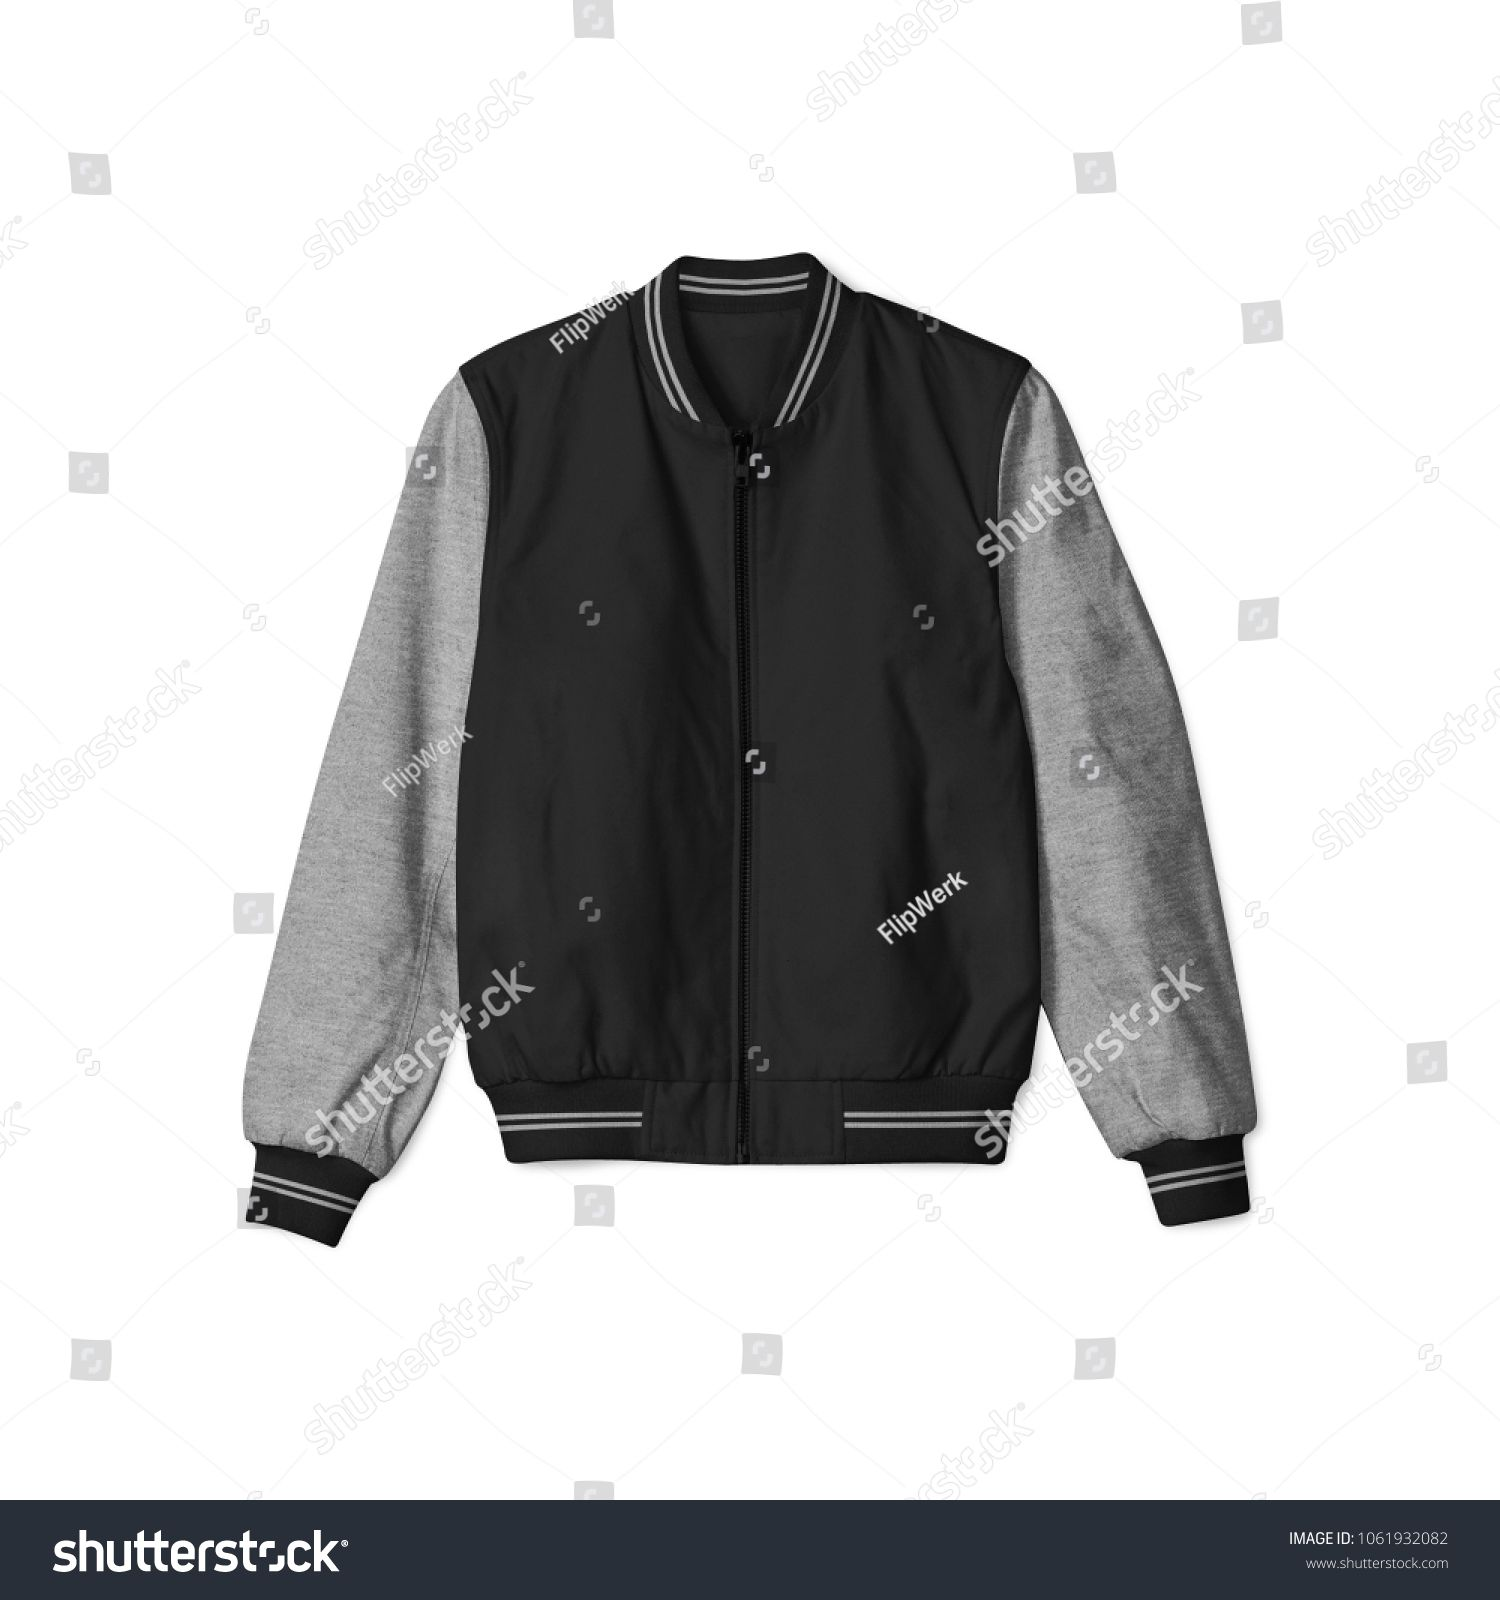 Blank Jacket Bomber Baseball Black Heather Grey Color On White Background In Front View Isolated For Mockup Template Black Heather Bomber Jacket Jackets Black [ 1600 x 1500 Pixel ]